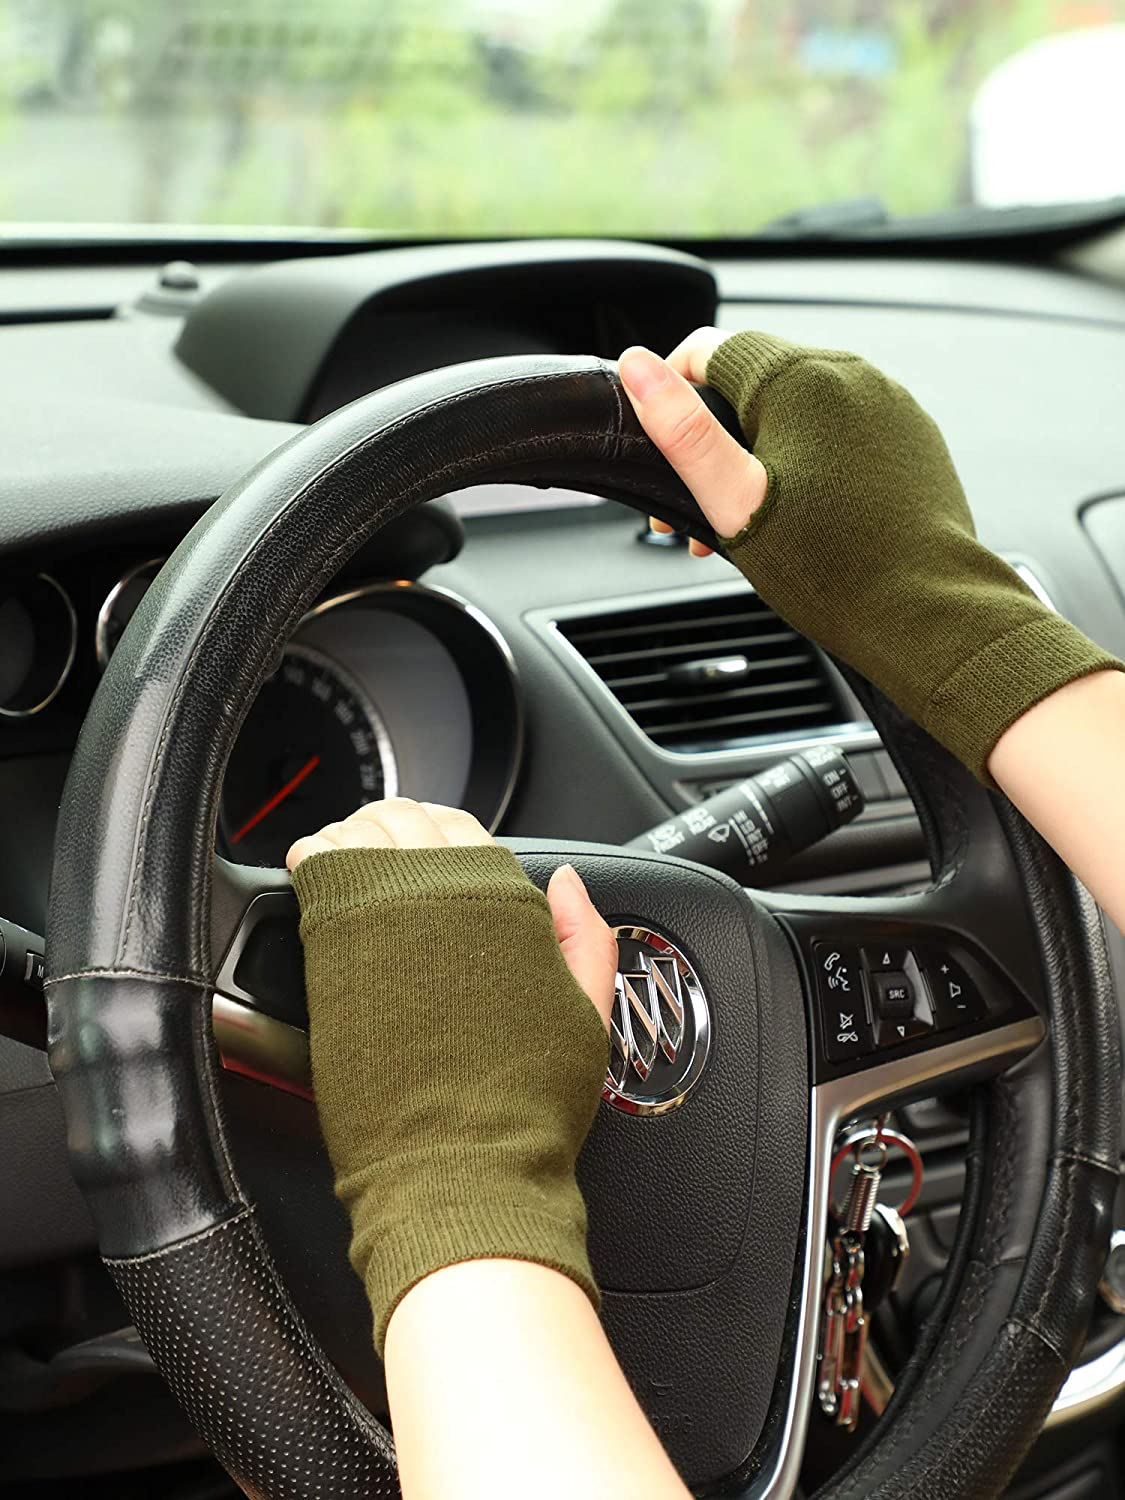 Blulu Fingerless Warm Gloves with Thumb Hole Cozy Half Fingerless Driving Gloves Knit Mittens for Men, Women (Black, Army Green, 2 Pairs)